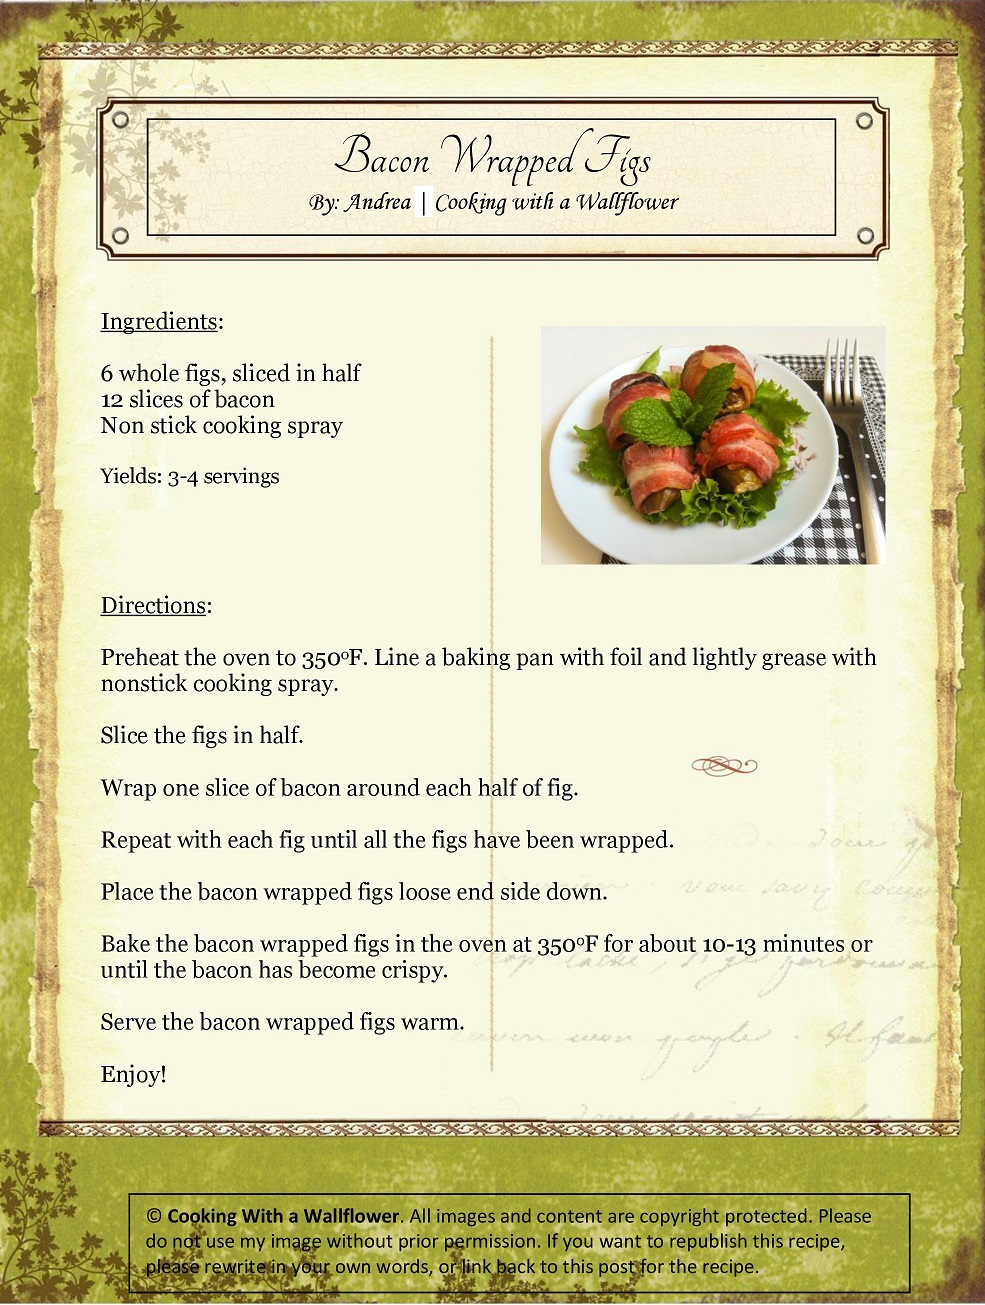 Bacon Wrapped Figs Recipe Card